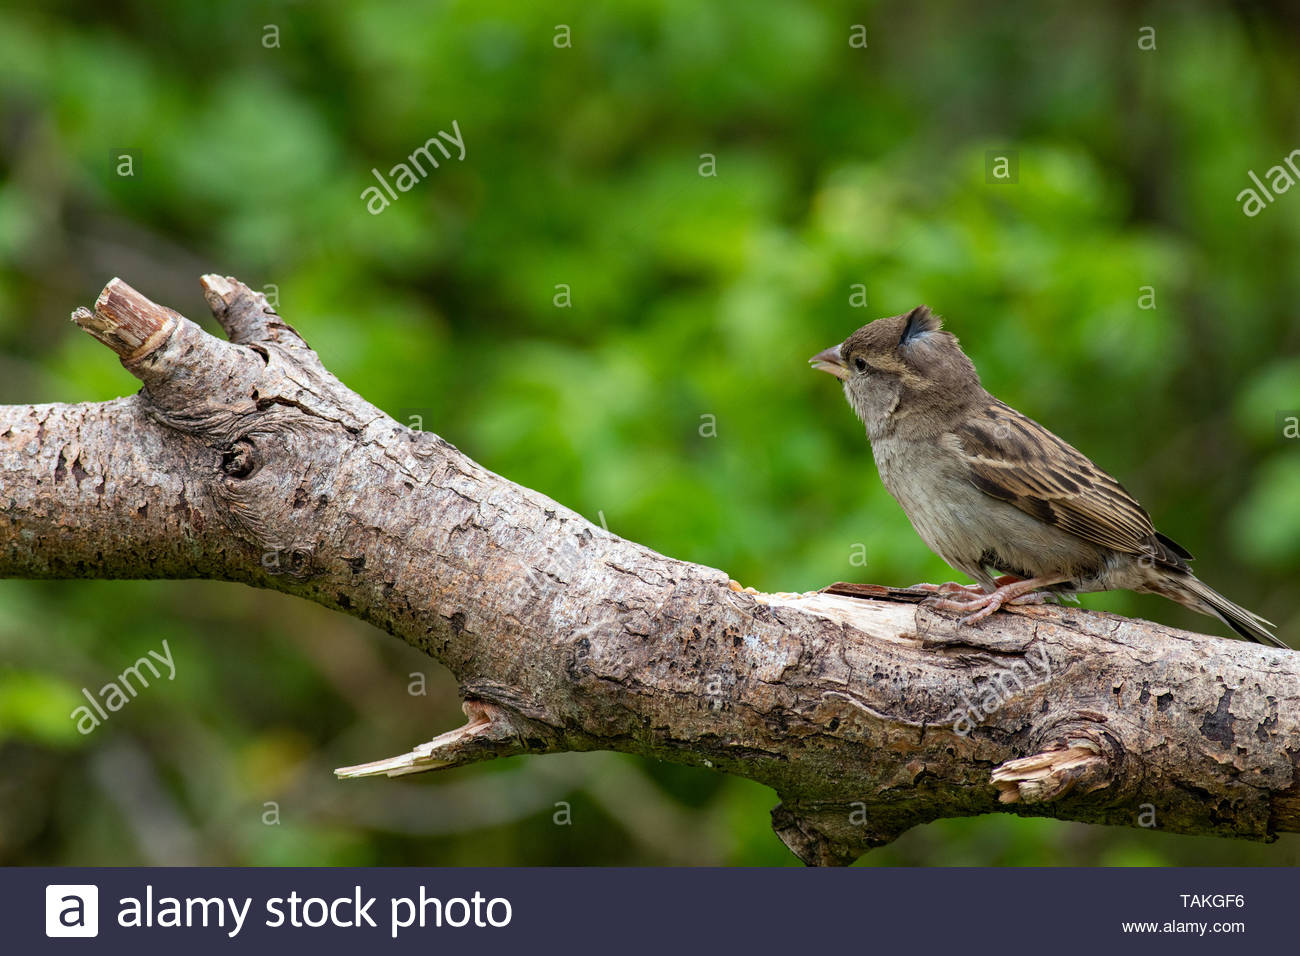 Juvenile House Sparrow (Passer domesticus) perched on branch - Stock Image